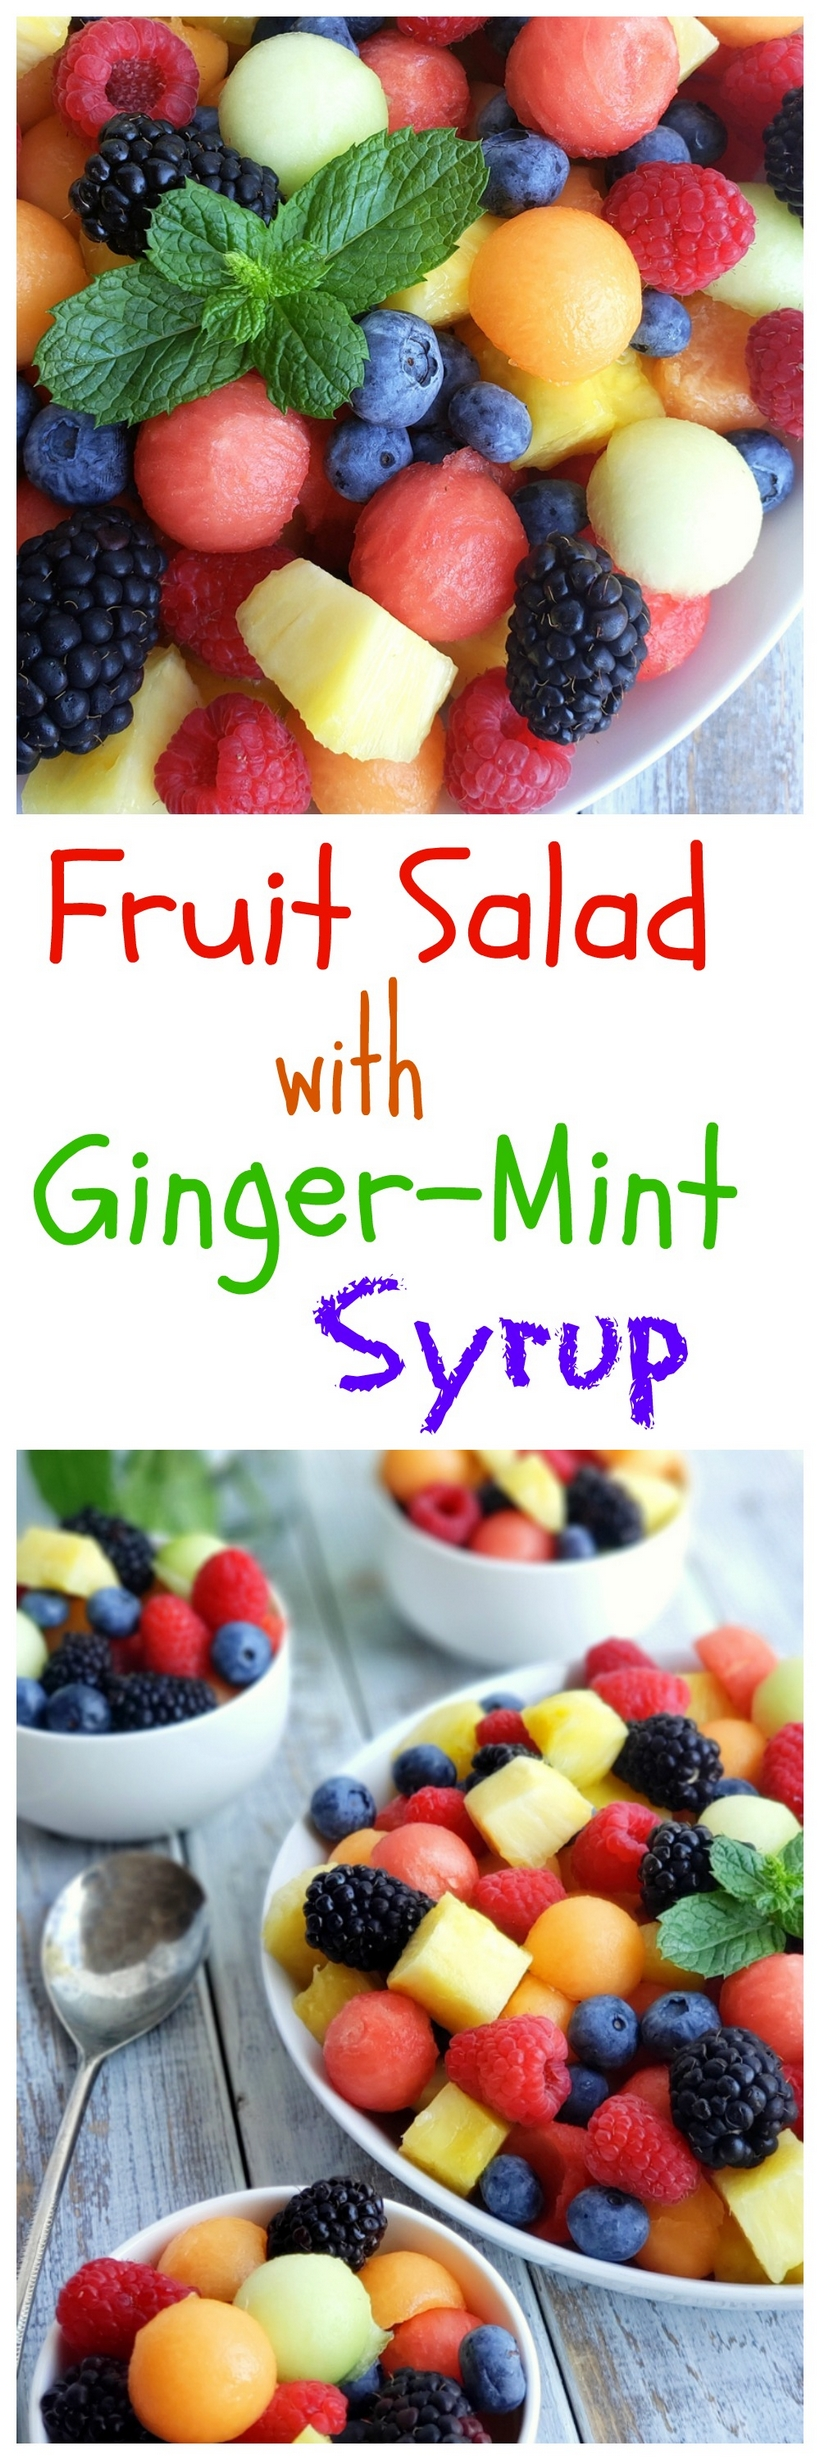 Almost any fruit is excellent here - even peaches, nectarines and cherries would work well in this Fruit Salad with Ginger-Mint Syrup. Use what strikes you for dessert and serve with sugar cookies. The ginger-mint syrup is especially good when your fruit needs a little extra sweetness.#fruitsalad  via @cmpollak1